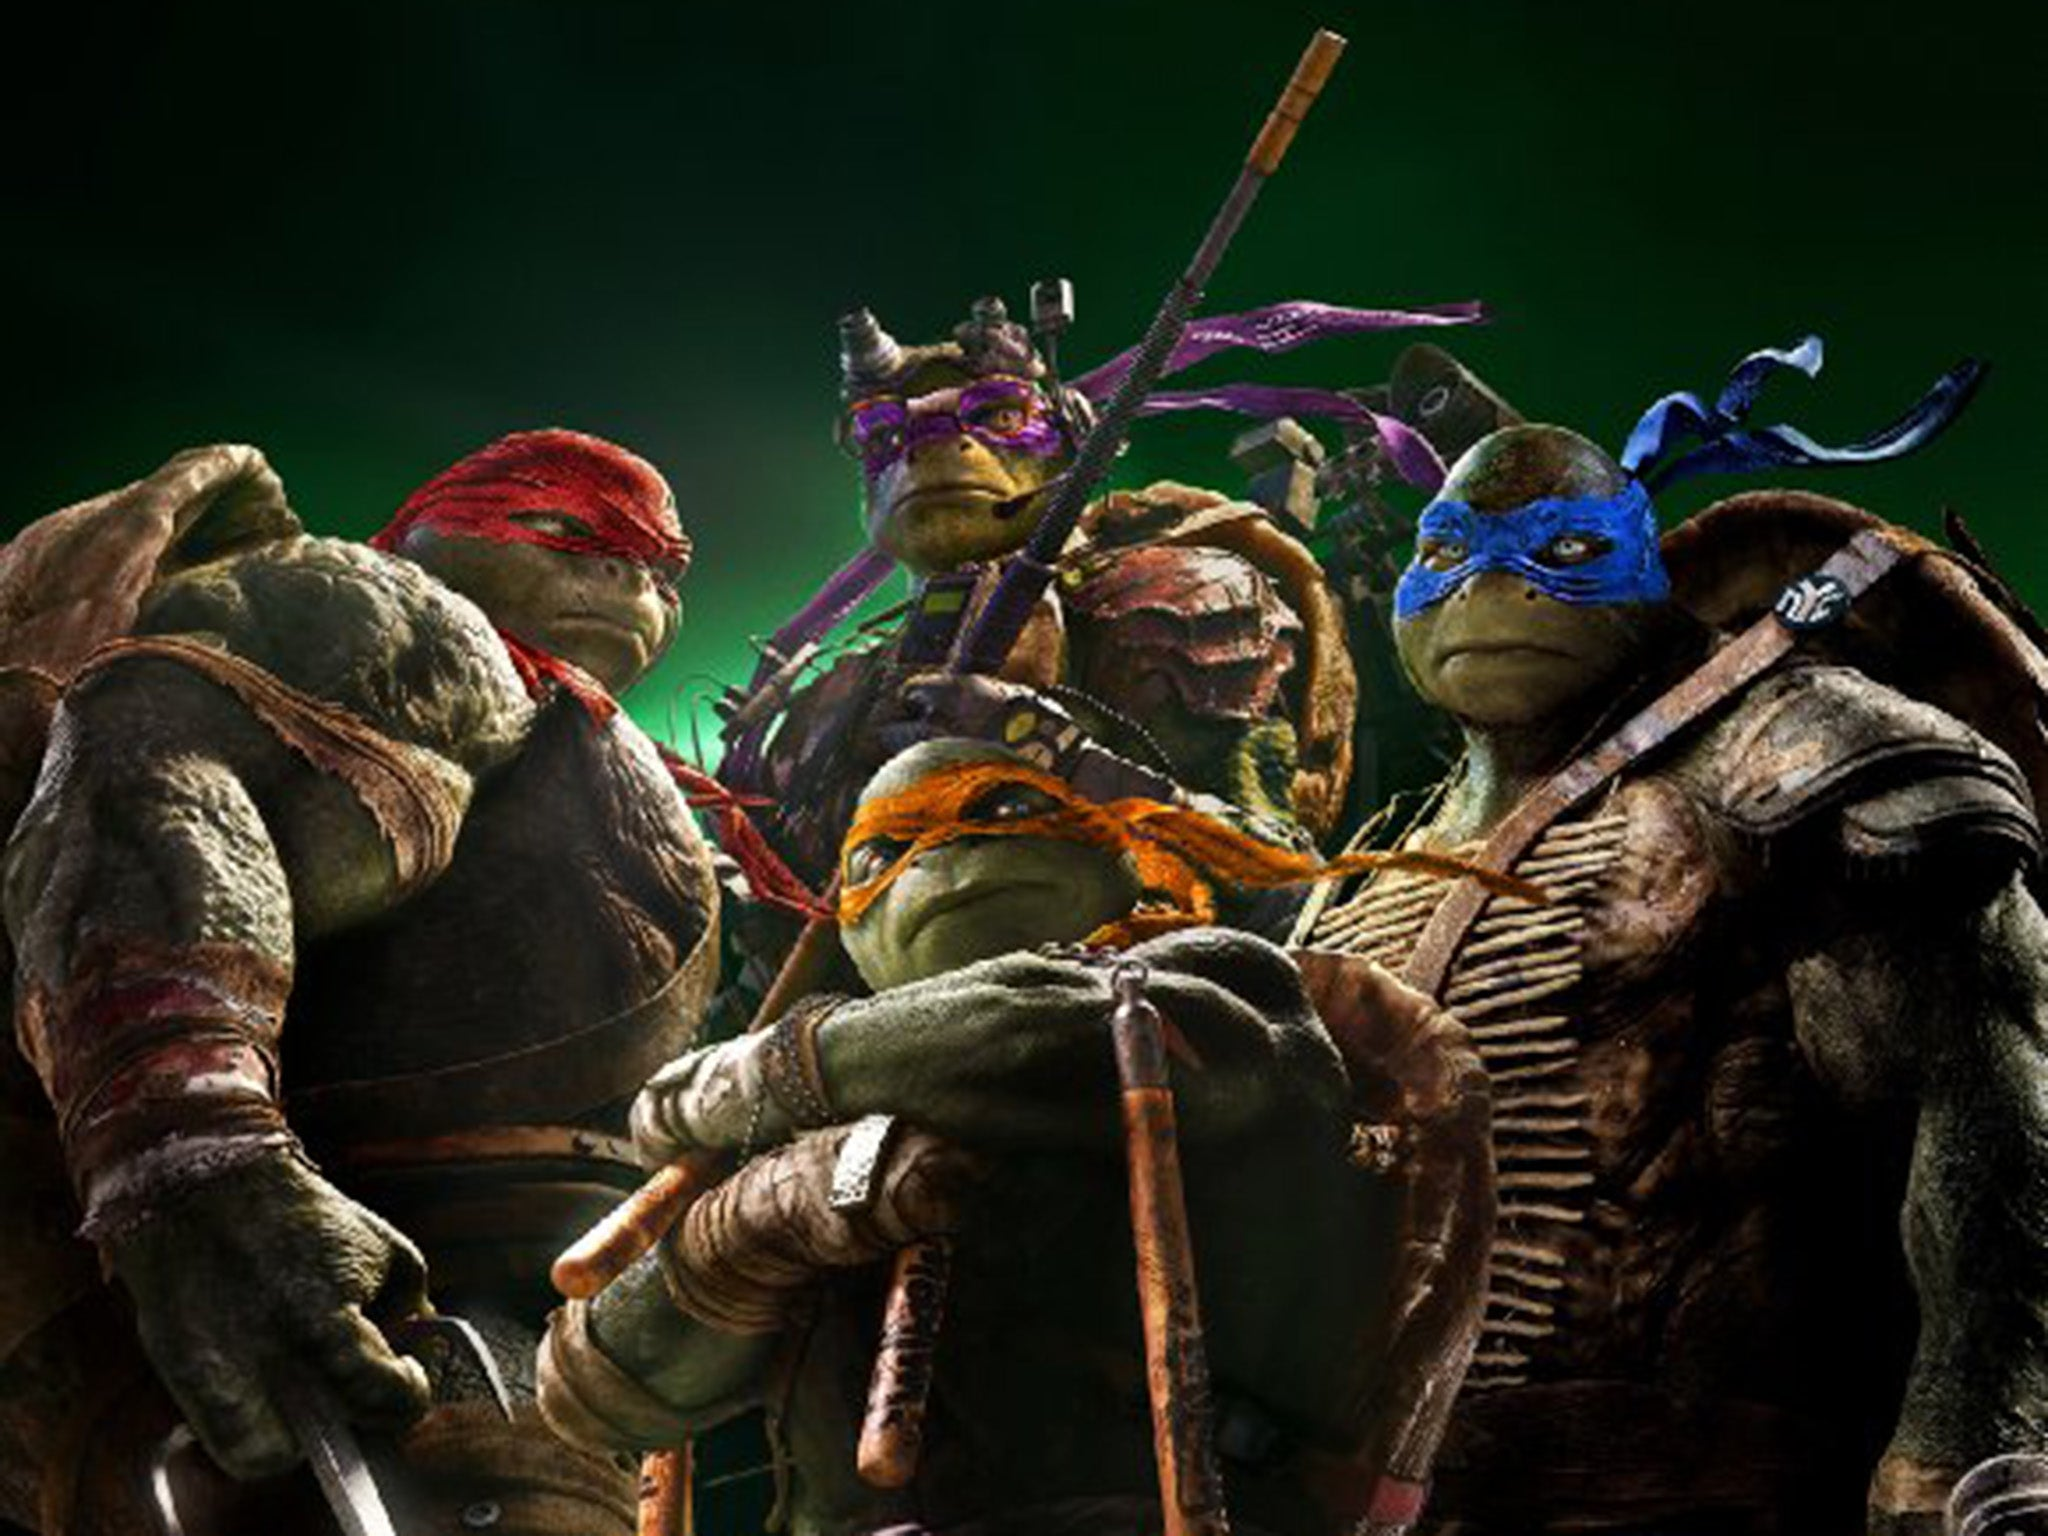 Teenage Mutant Ninja Turtles Fans Mourn The Death Of Their Favourite Hero In A Hard Shell The Independent The Independent